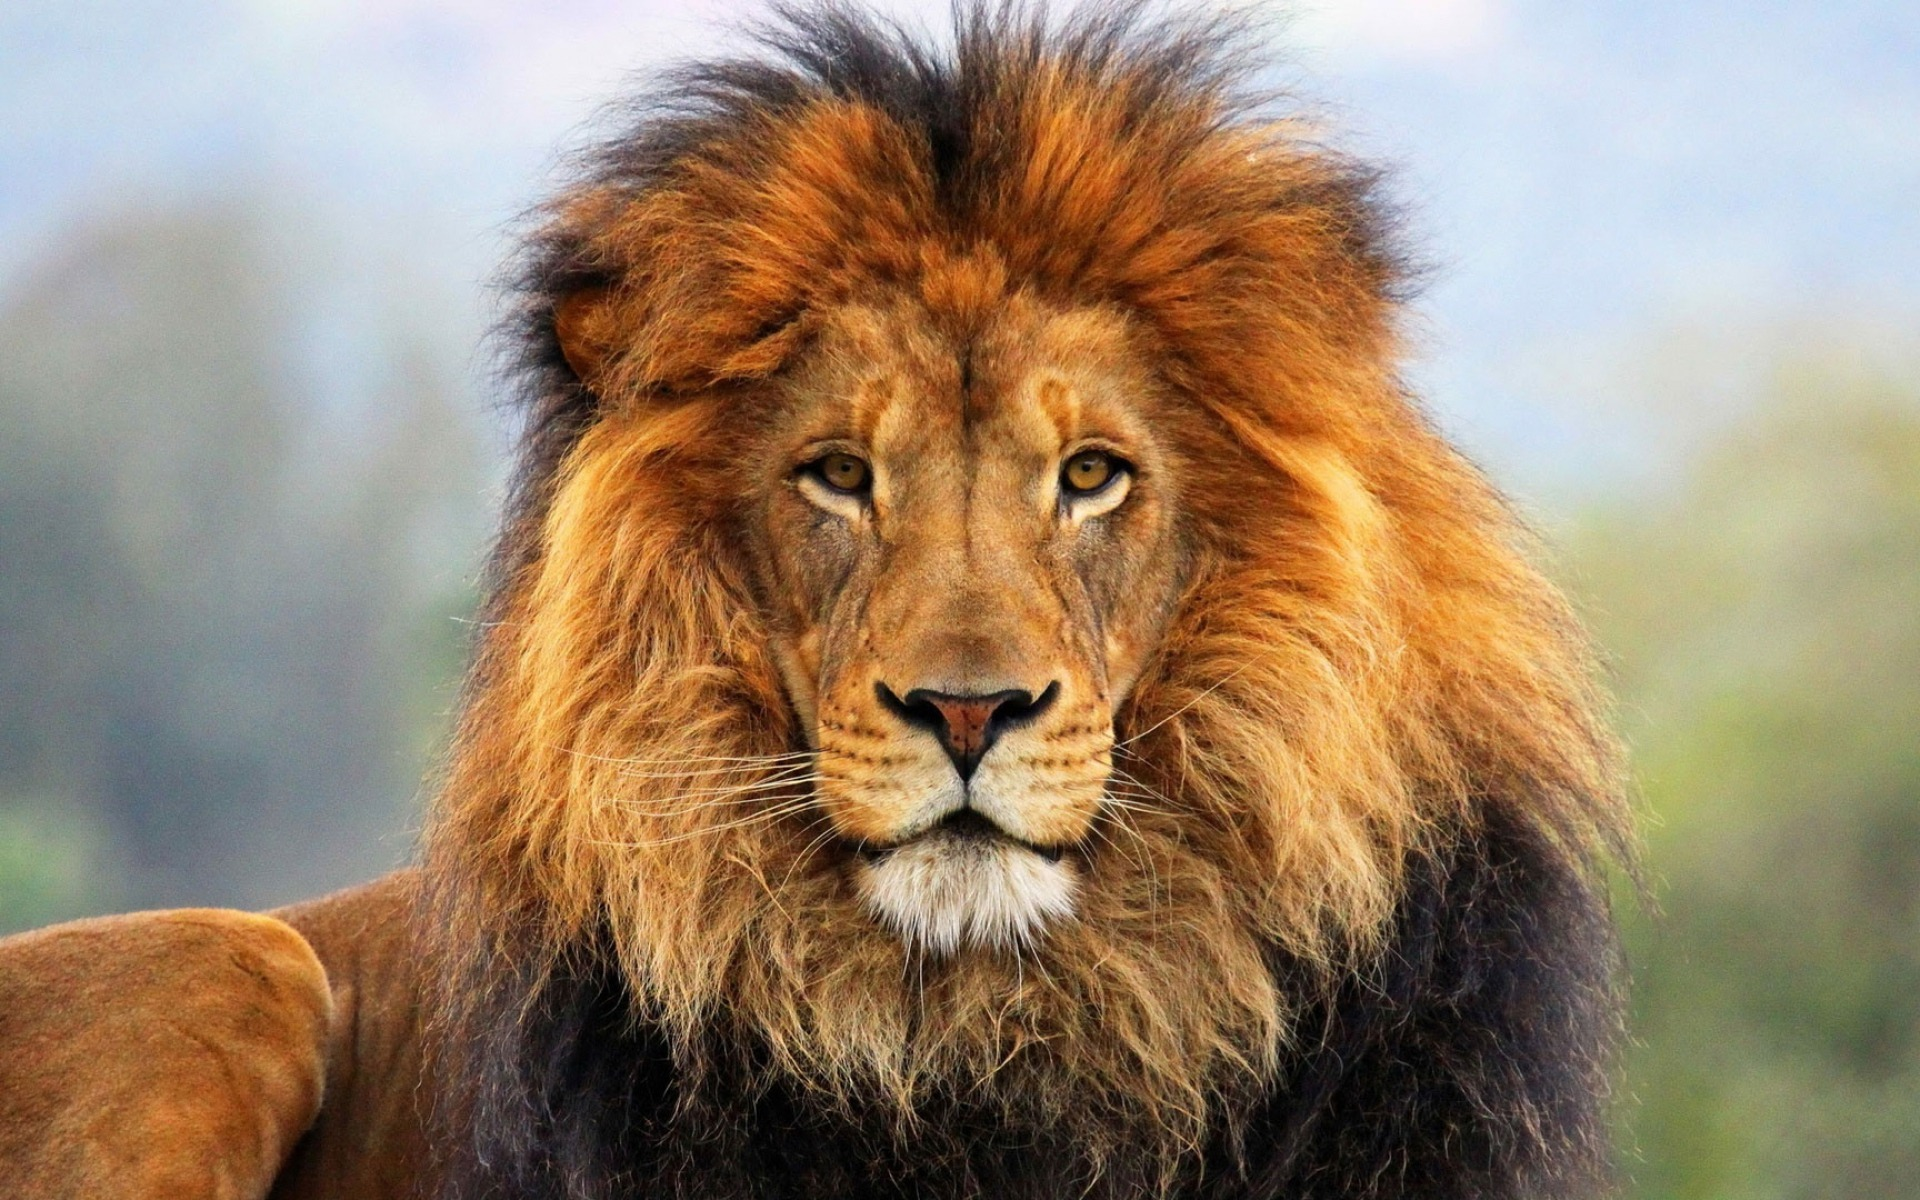 Lion Face Wallpaper Face Lion Wallpaper